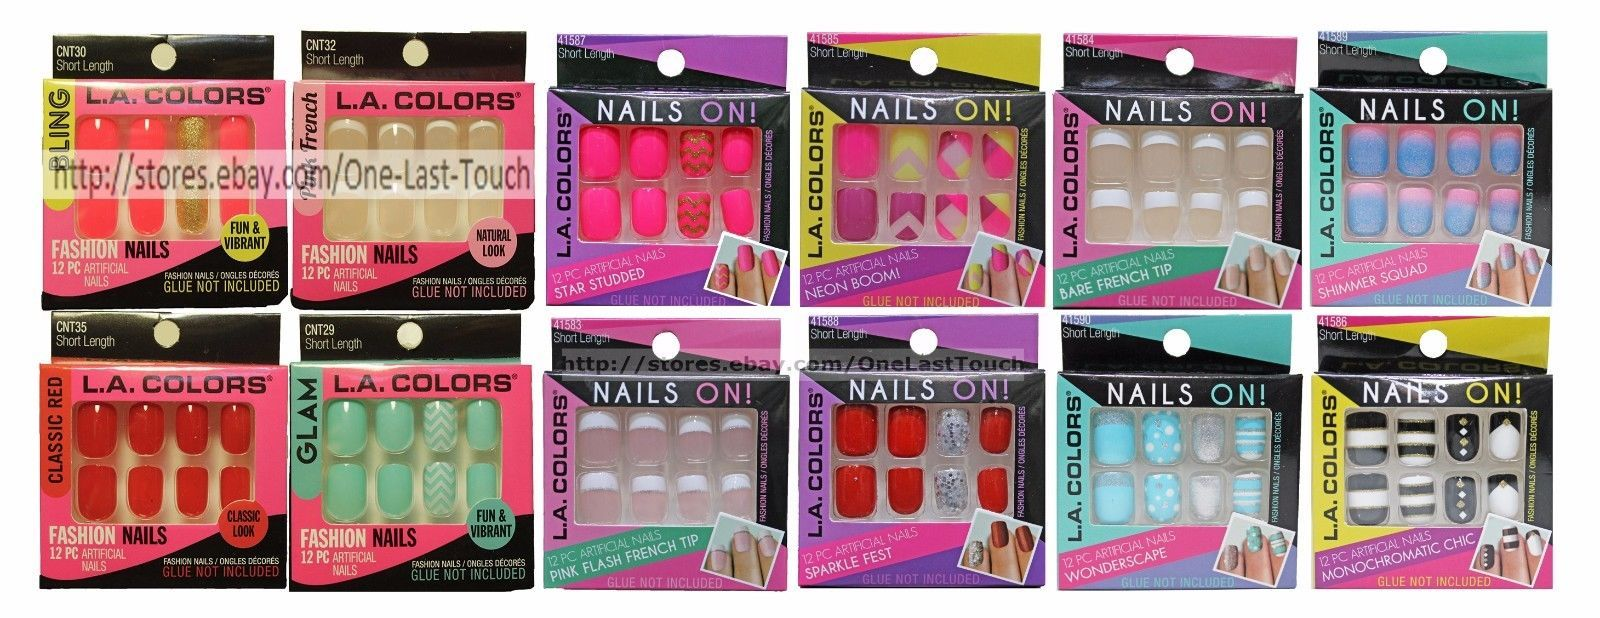 L.A. COLORS*12 pc Artificial FASHION NAILS Press/Glue-On SHORT New ...